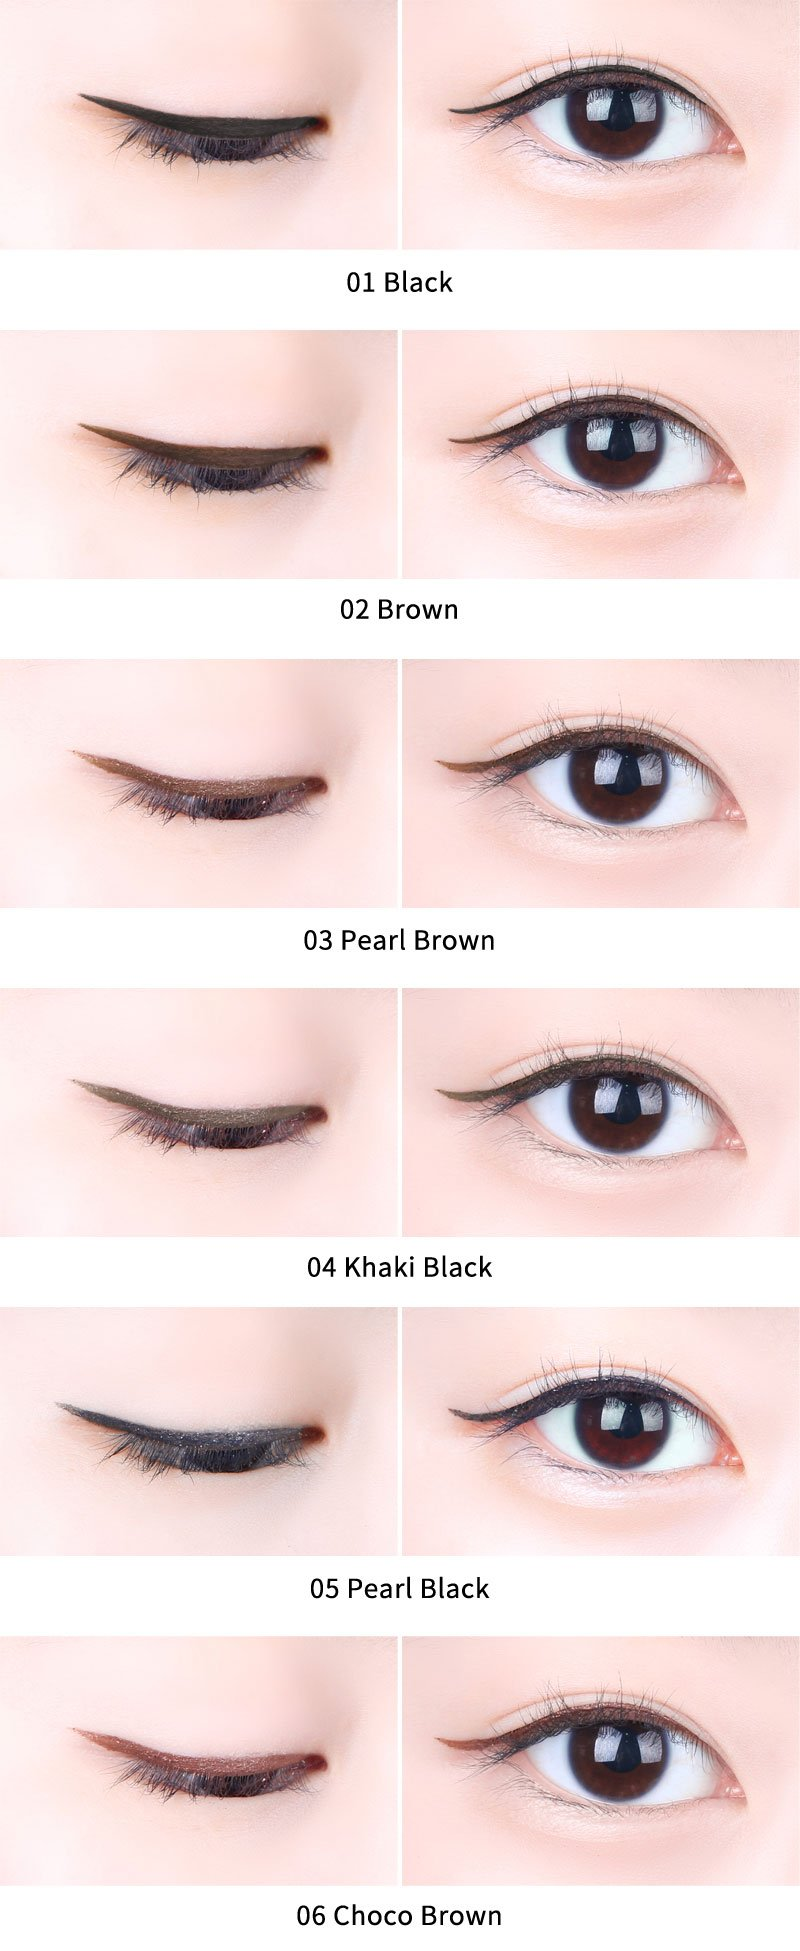 Tony Moly Backgel Eyeliner - Gembira.com.my